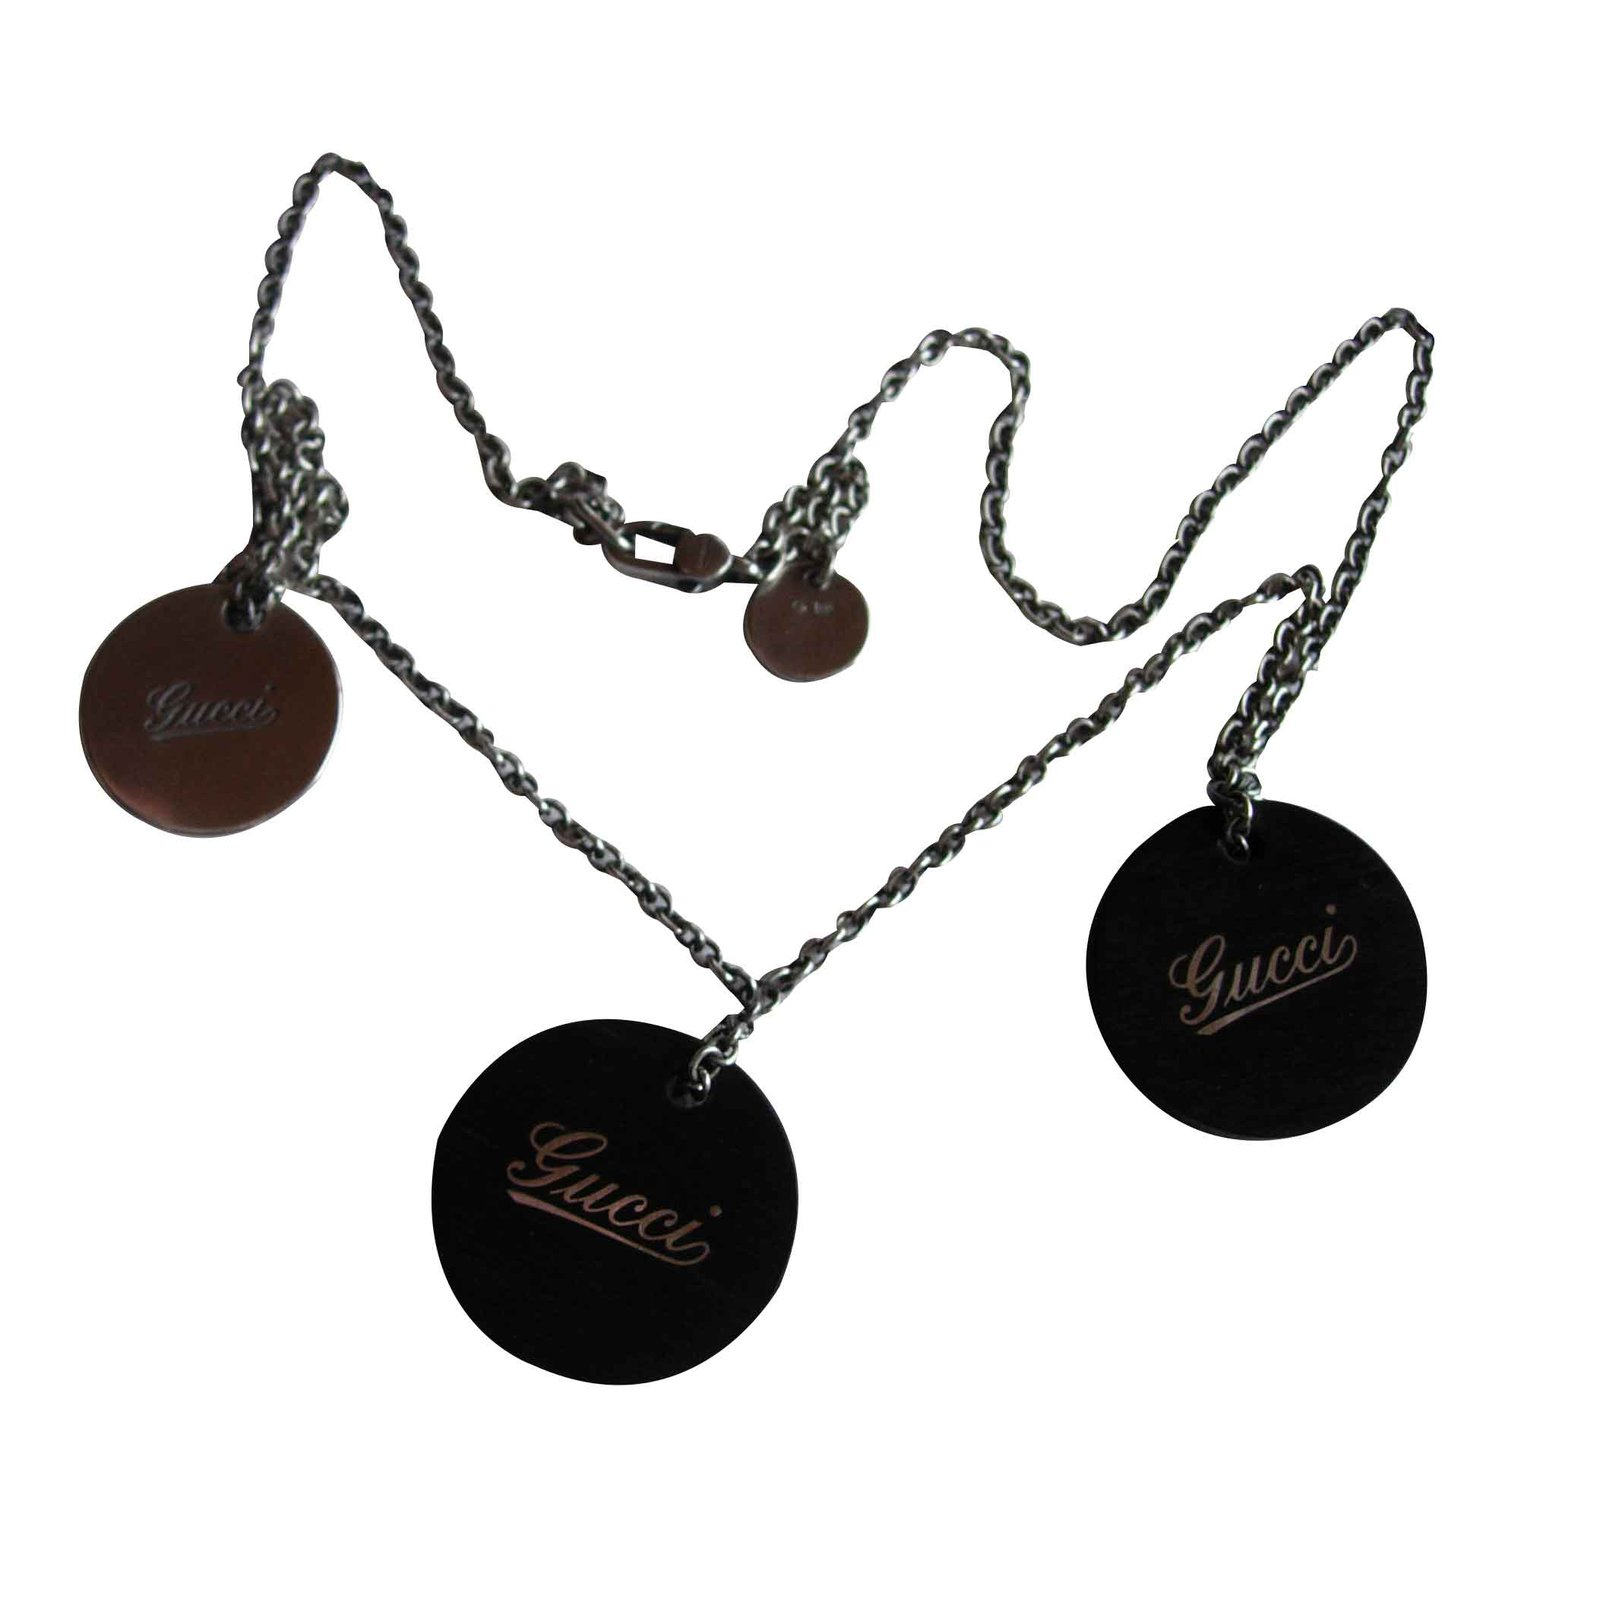 Gucci vintage necklace in silver and wood